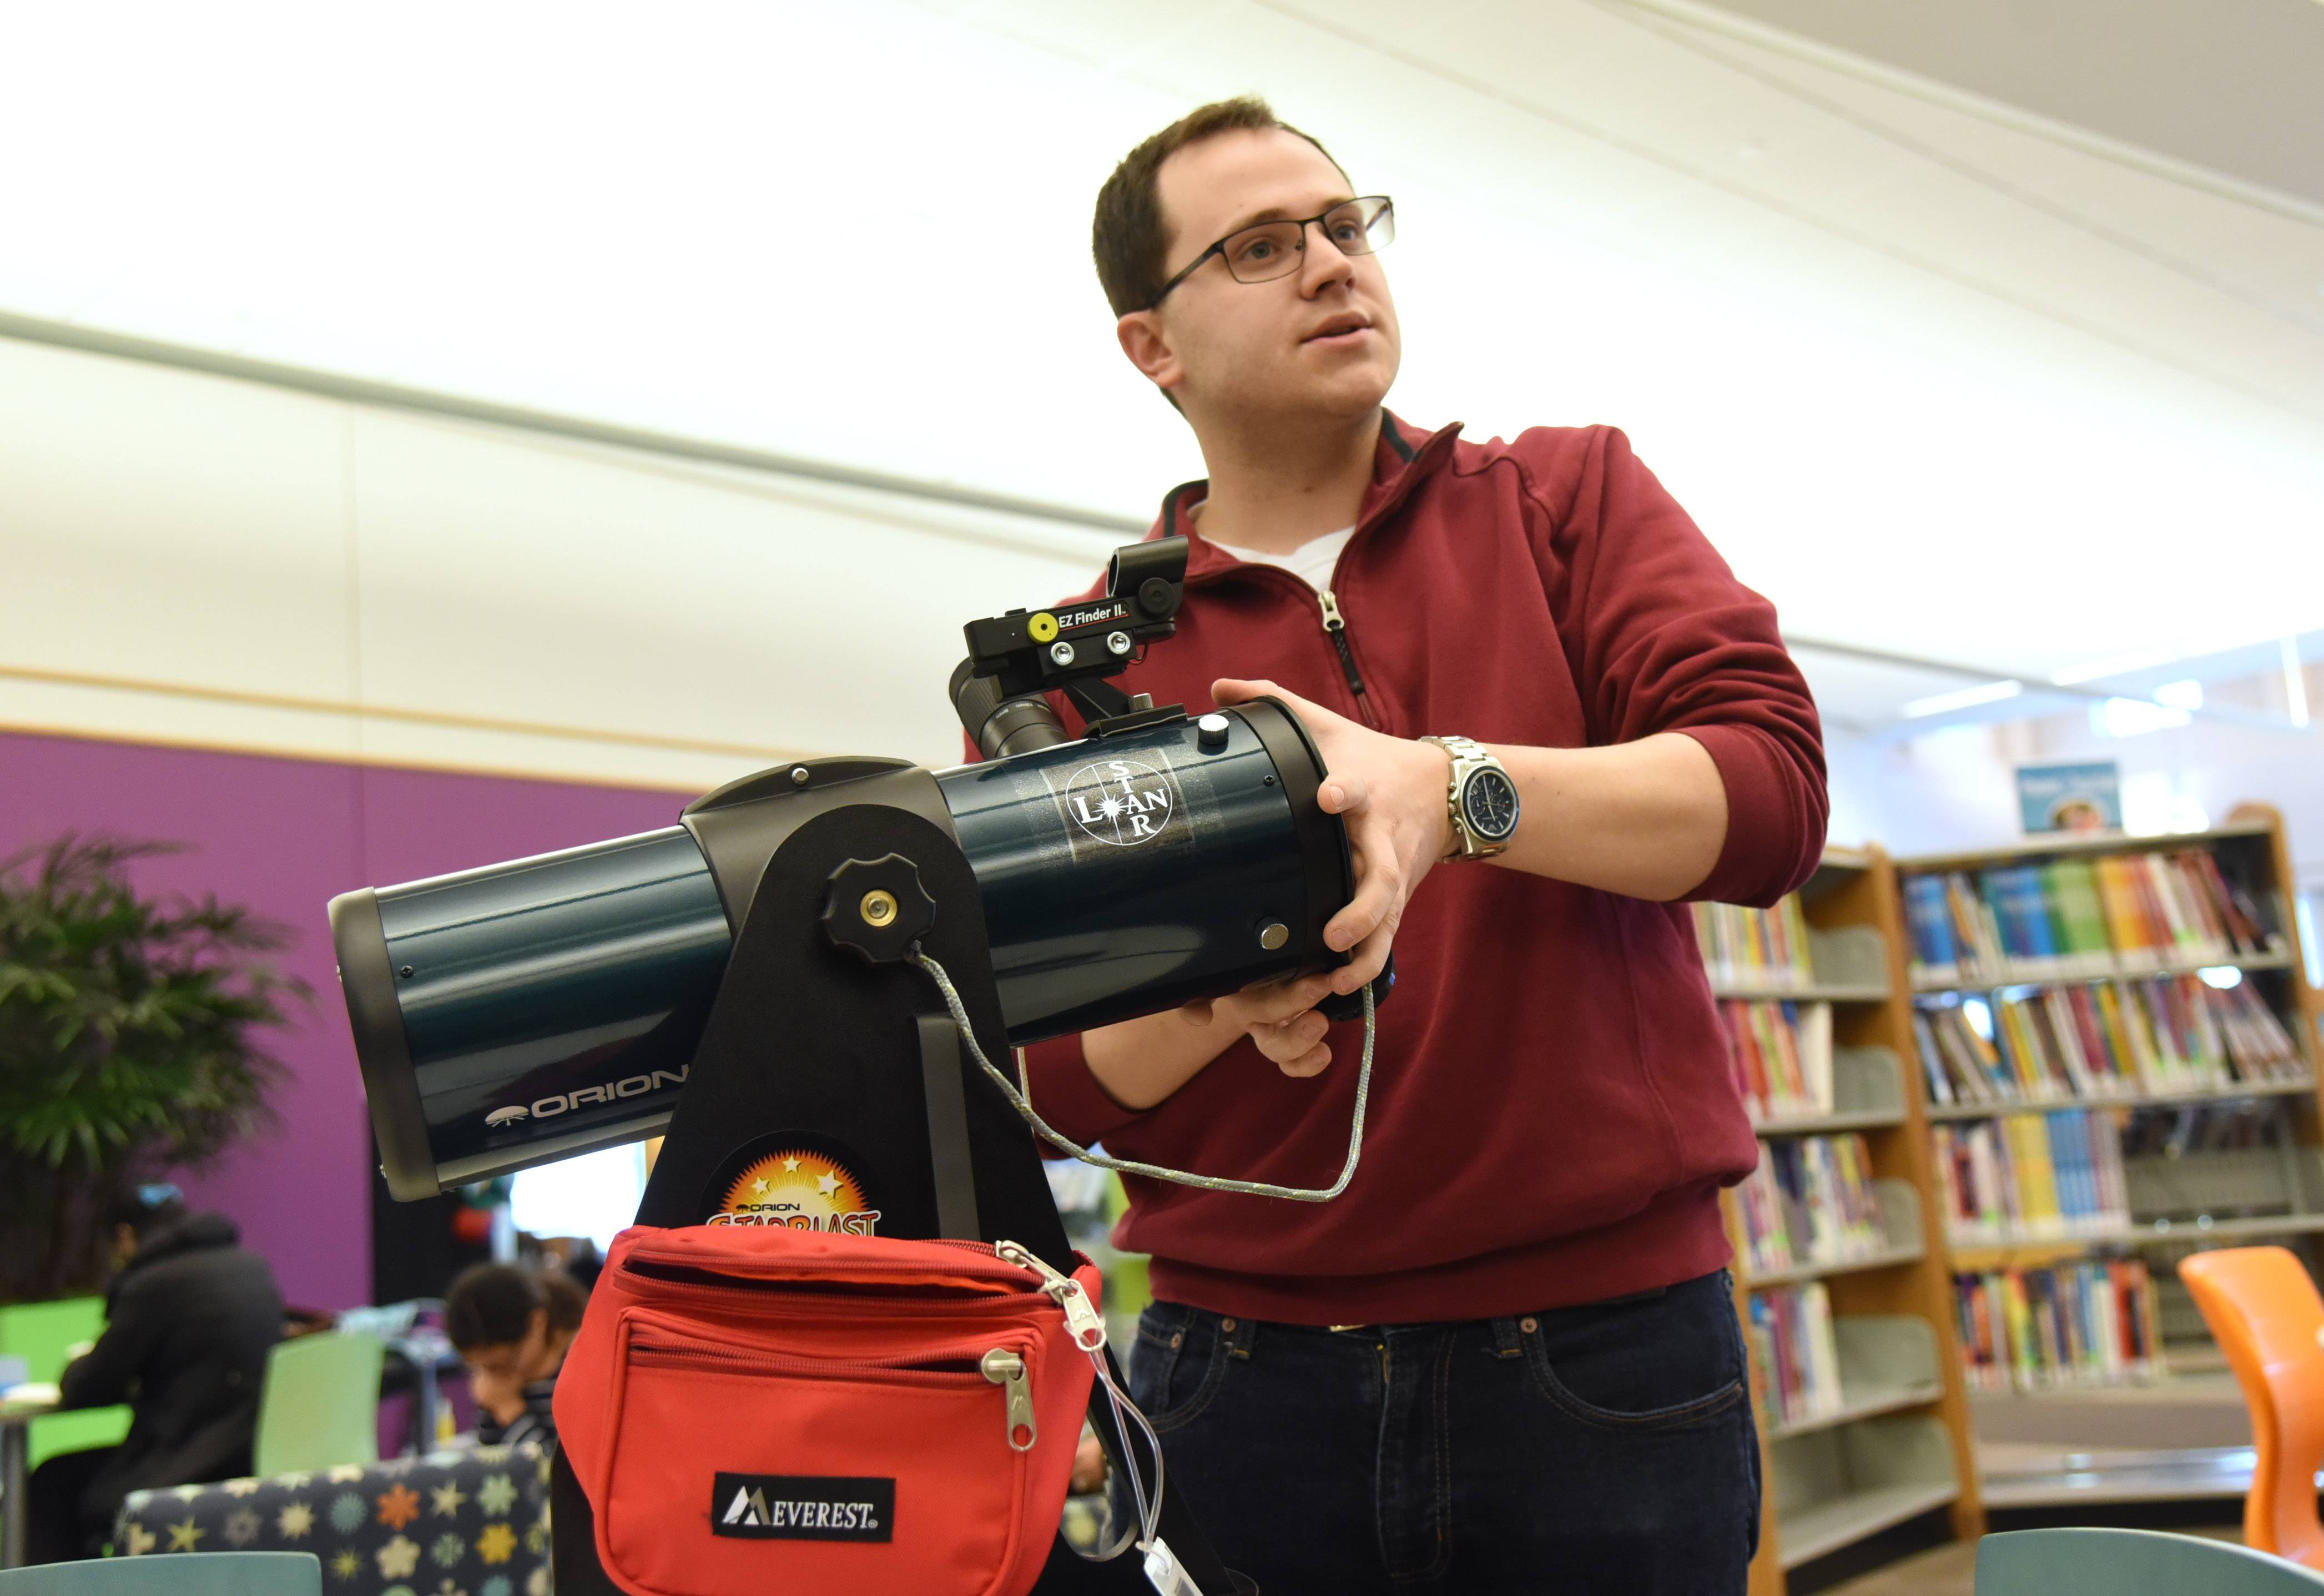 Vernon Area library offers telescopes to check out